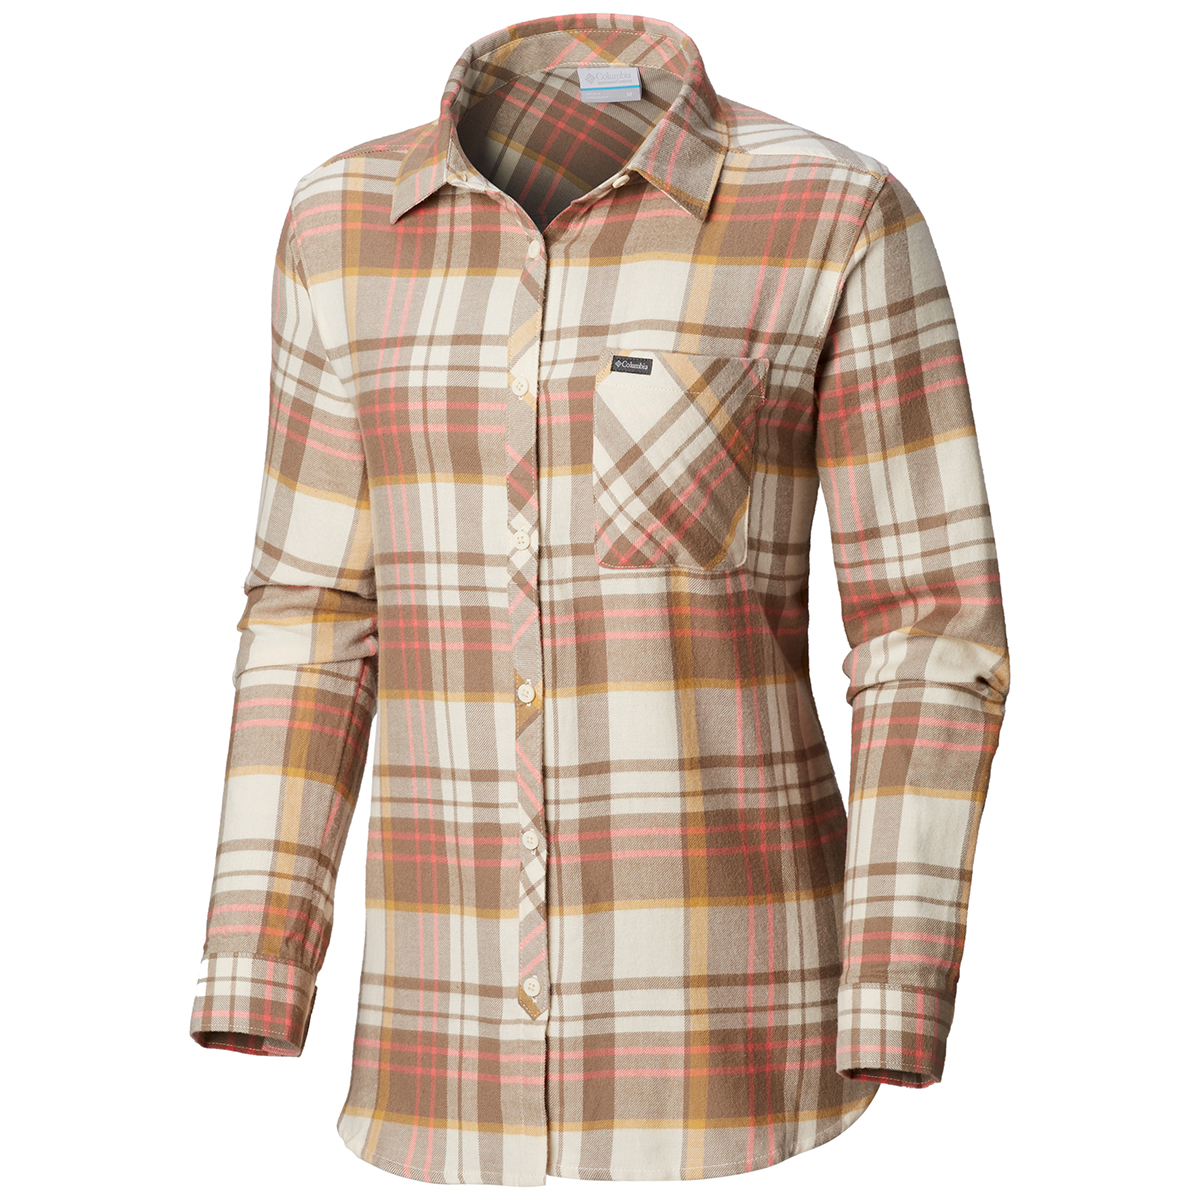 Columbia Women's Simply Put Ii Long-Sleeve Flannel Shirt - Brown, S